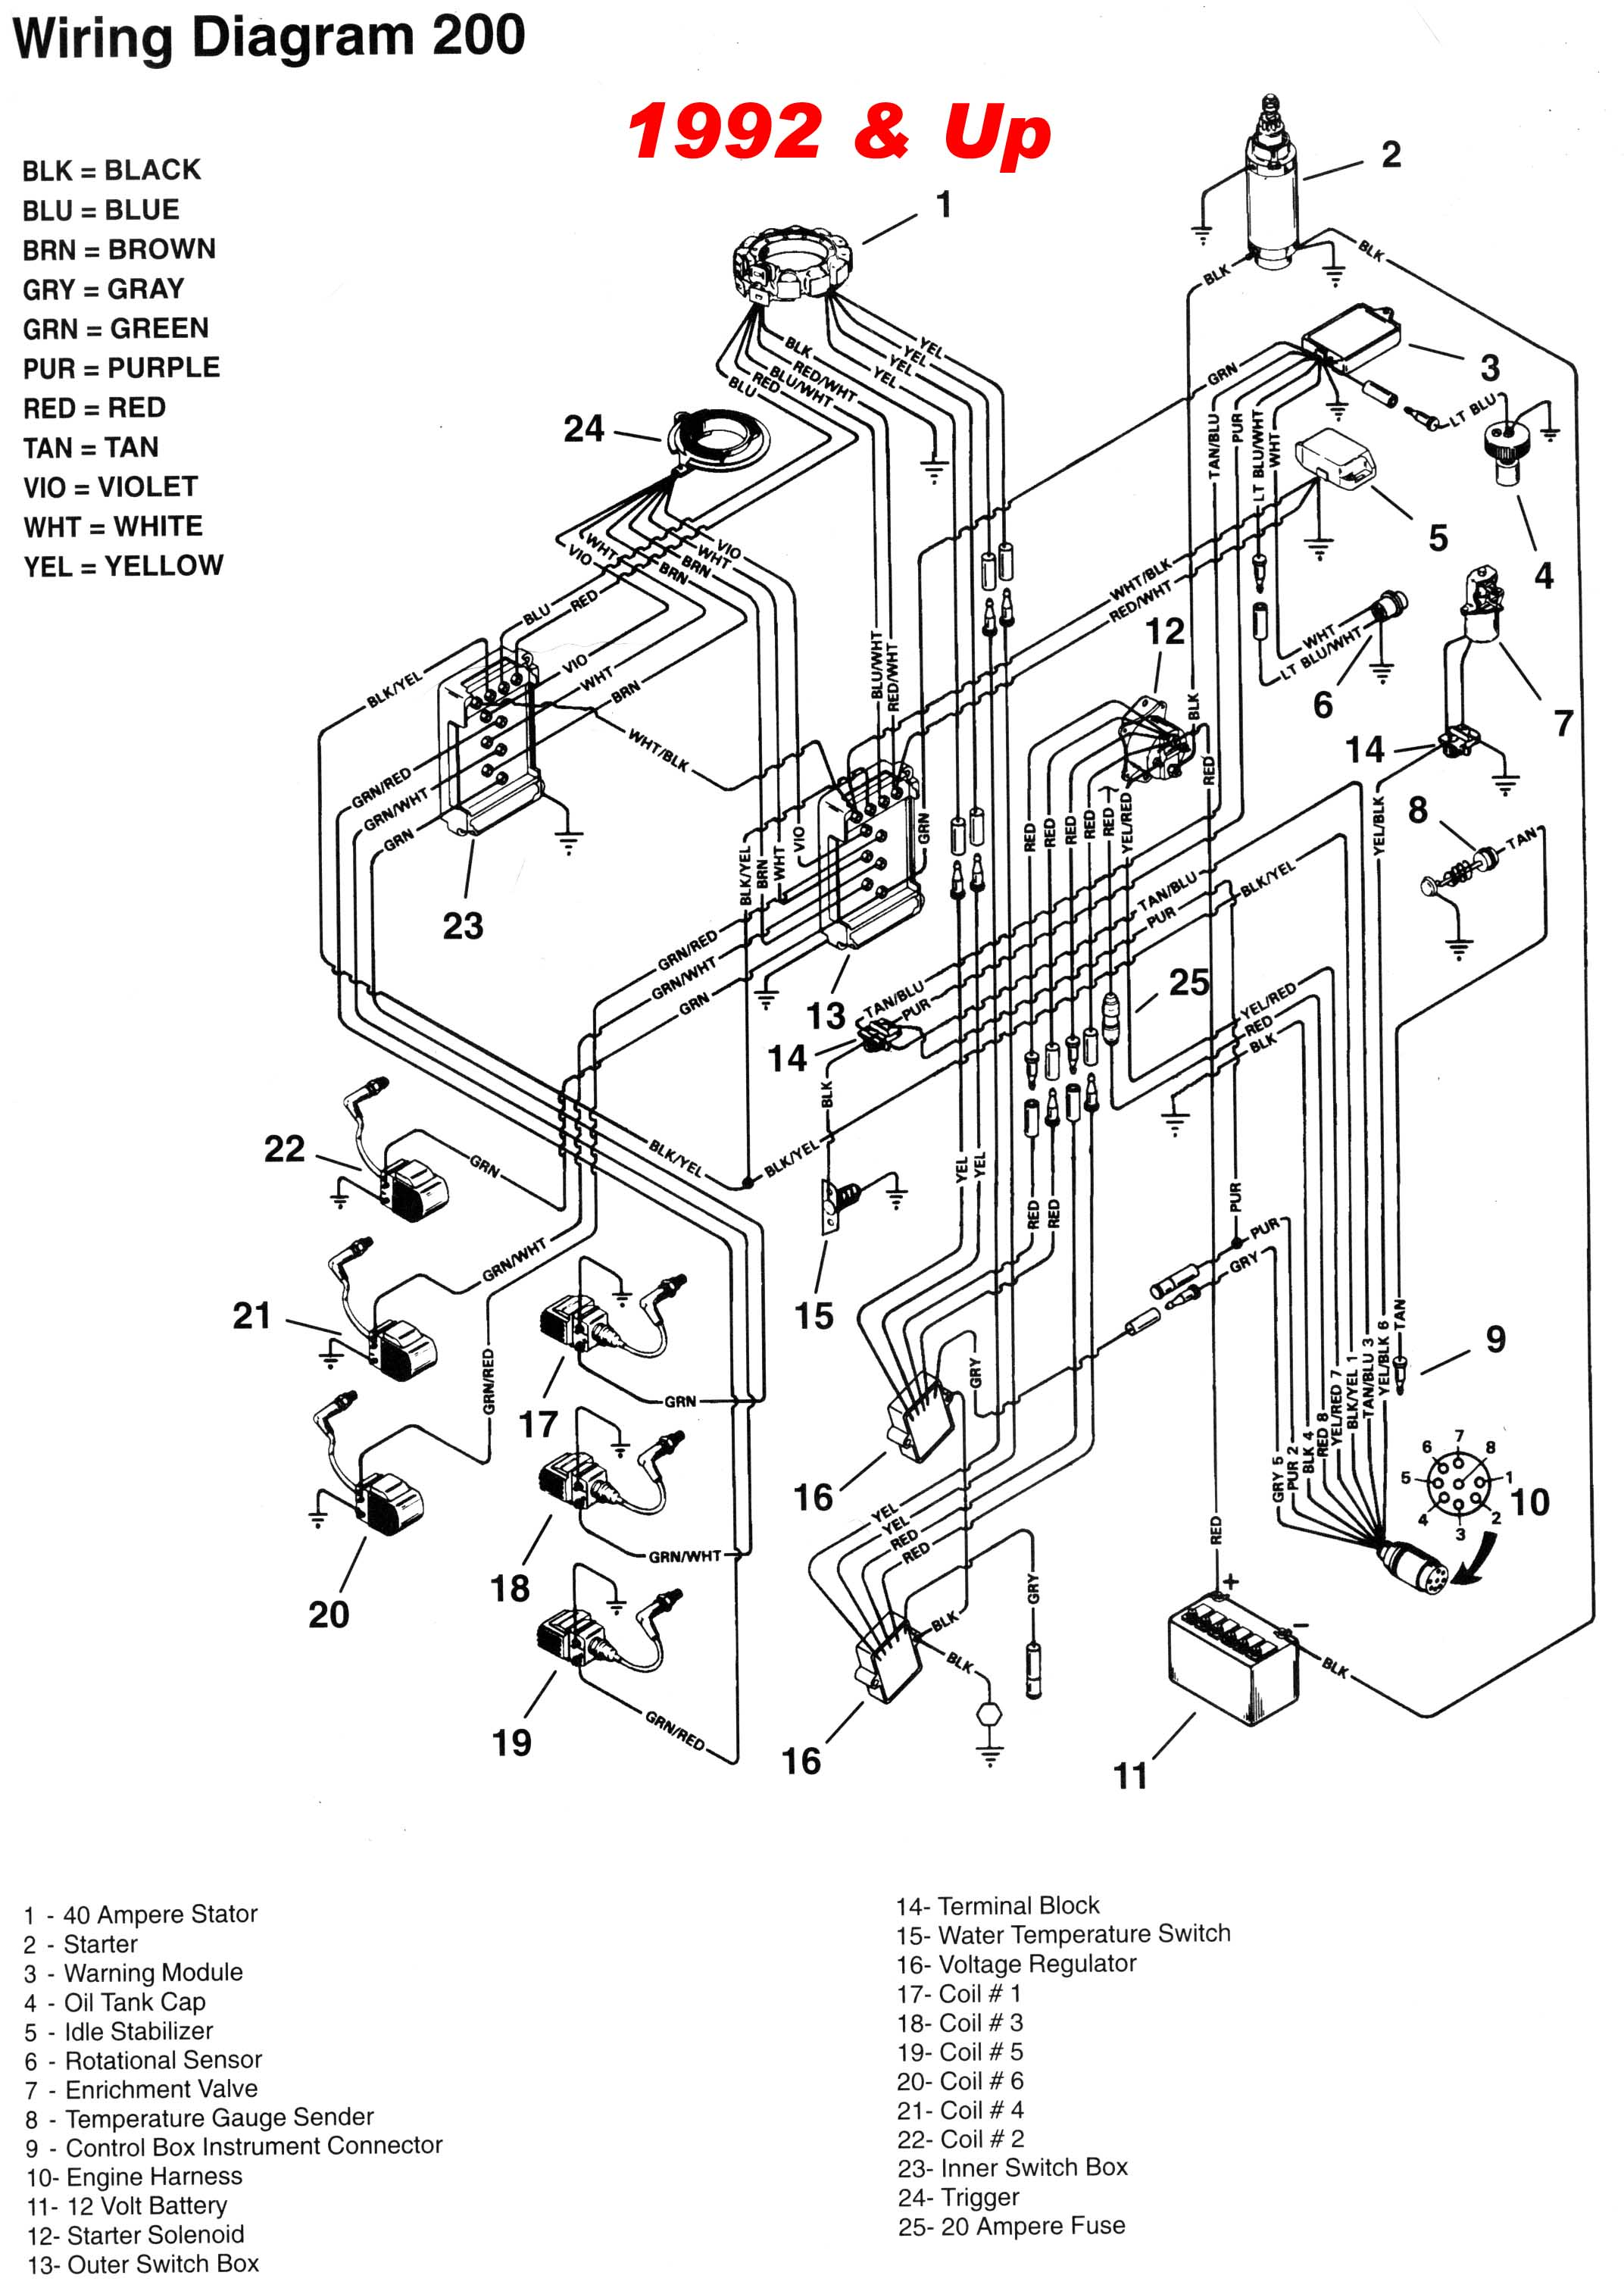 Mercury Outboard 2 5 And 3 0l V6 And Gearcase Faq Mercruiser Trim Sensor  Wiring Diagram 160 Mercruiser Wiring Diagram